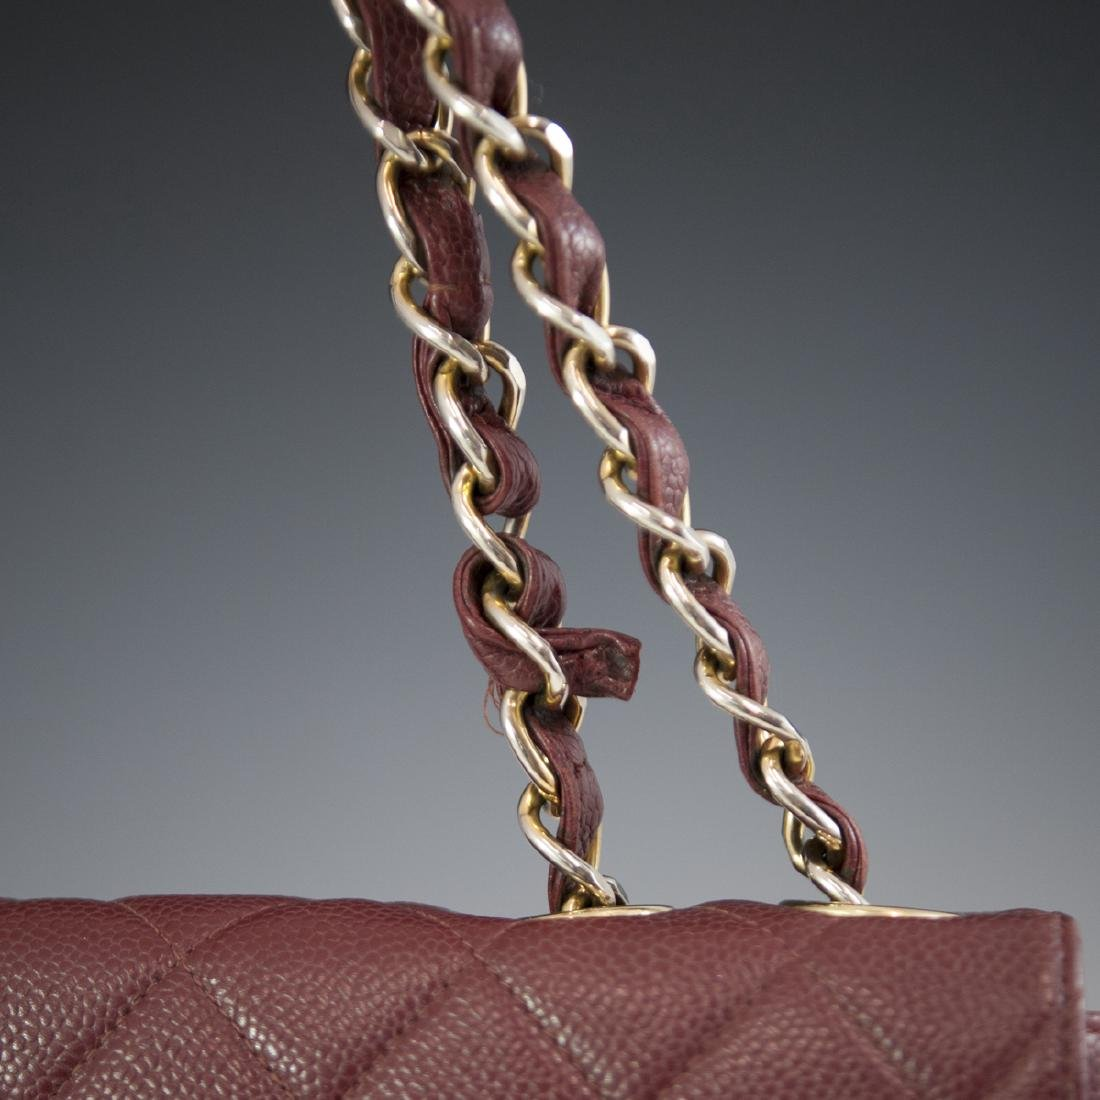 Chanel Caviar Leather Flap Bag - 5